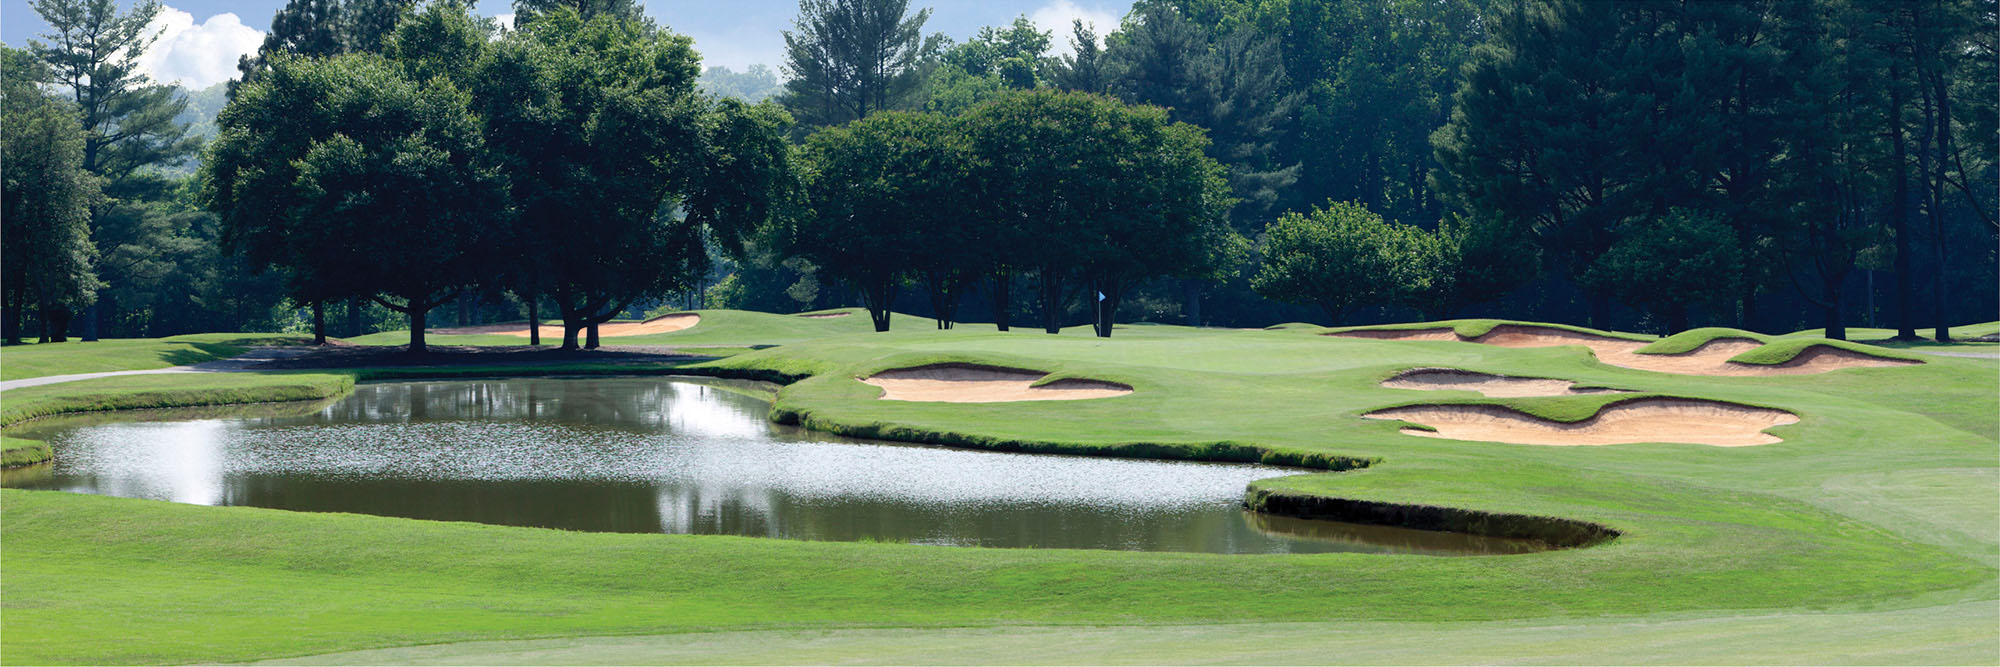 Golf Course Image - Tanglewood No. 3